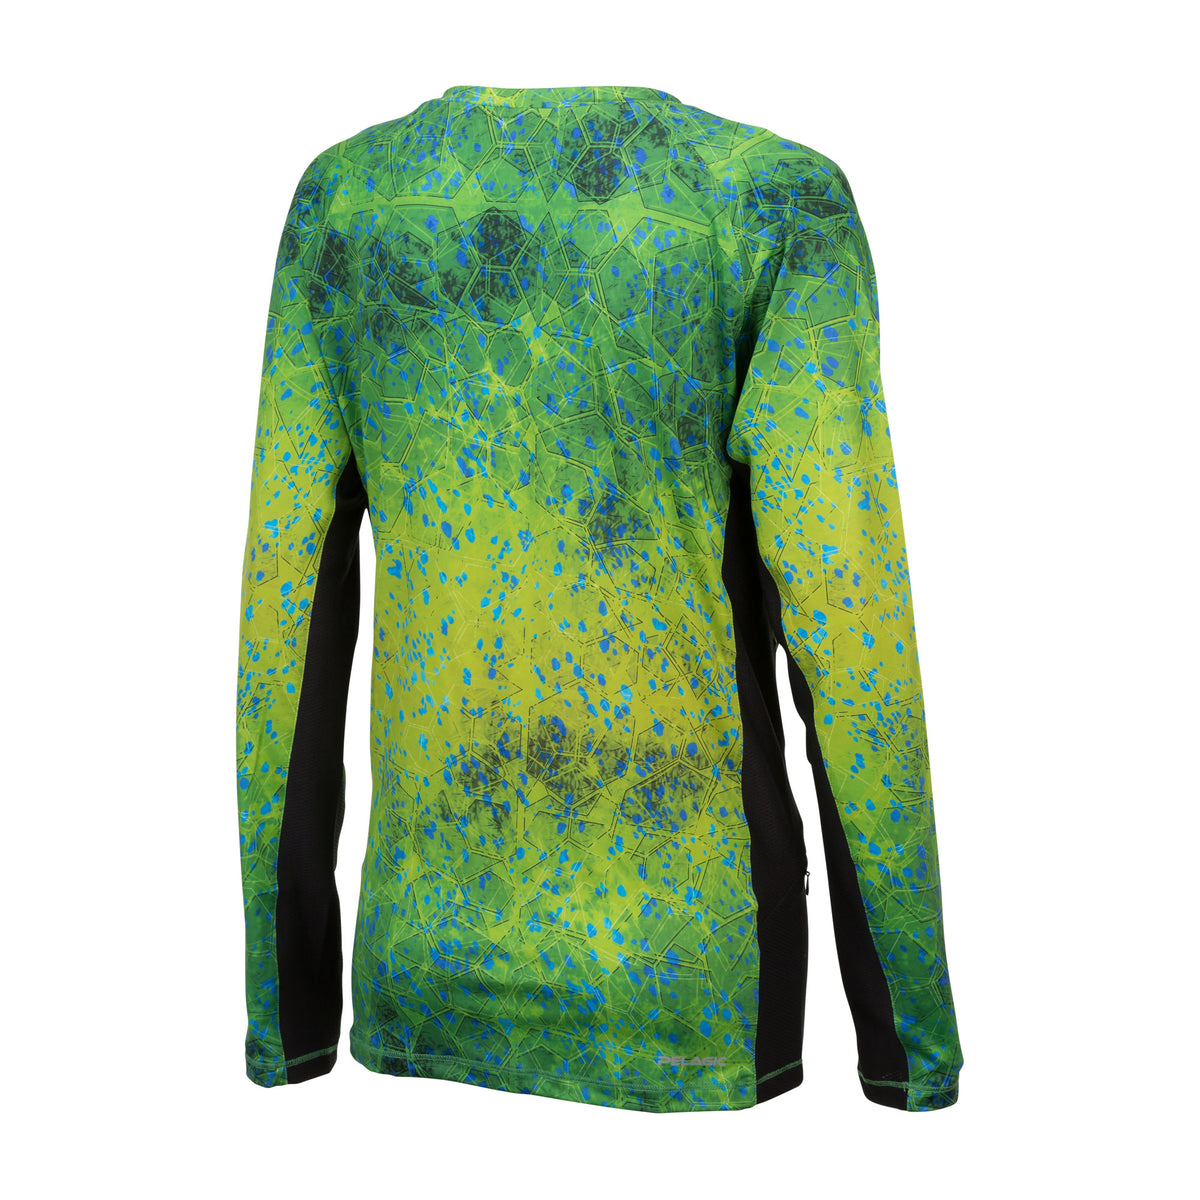 Solar Pro Long Sleeve UPF Shirt Big Image - 2